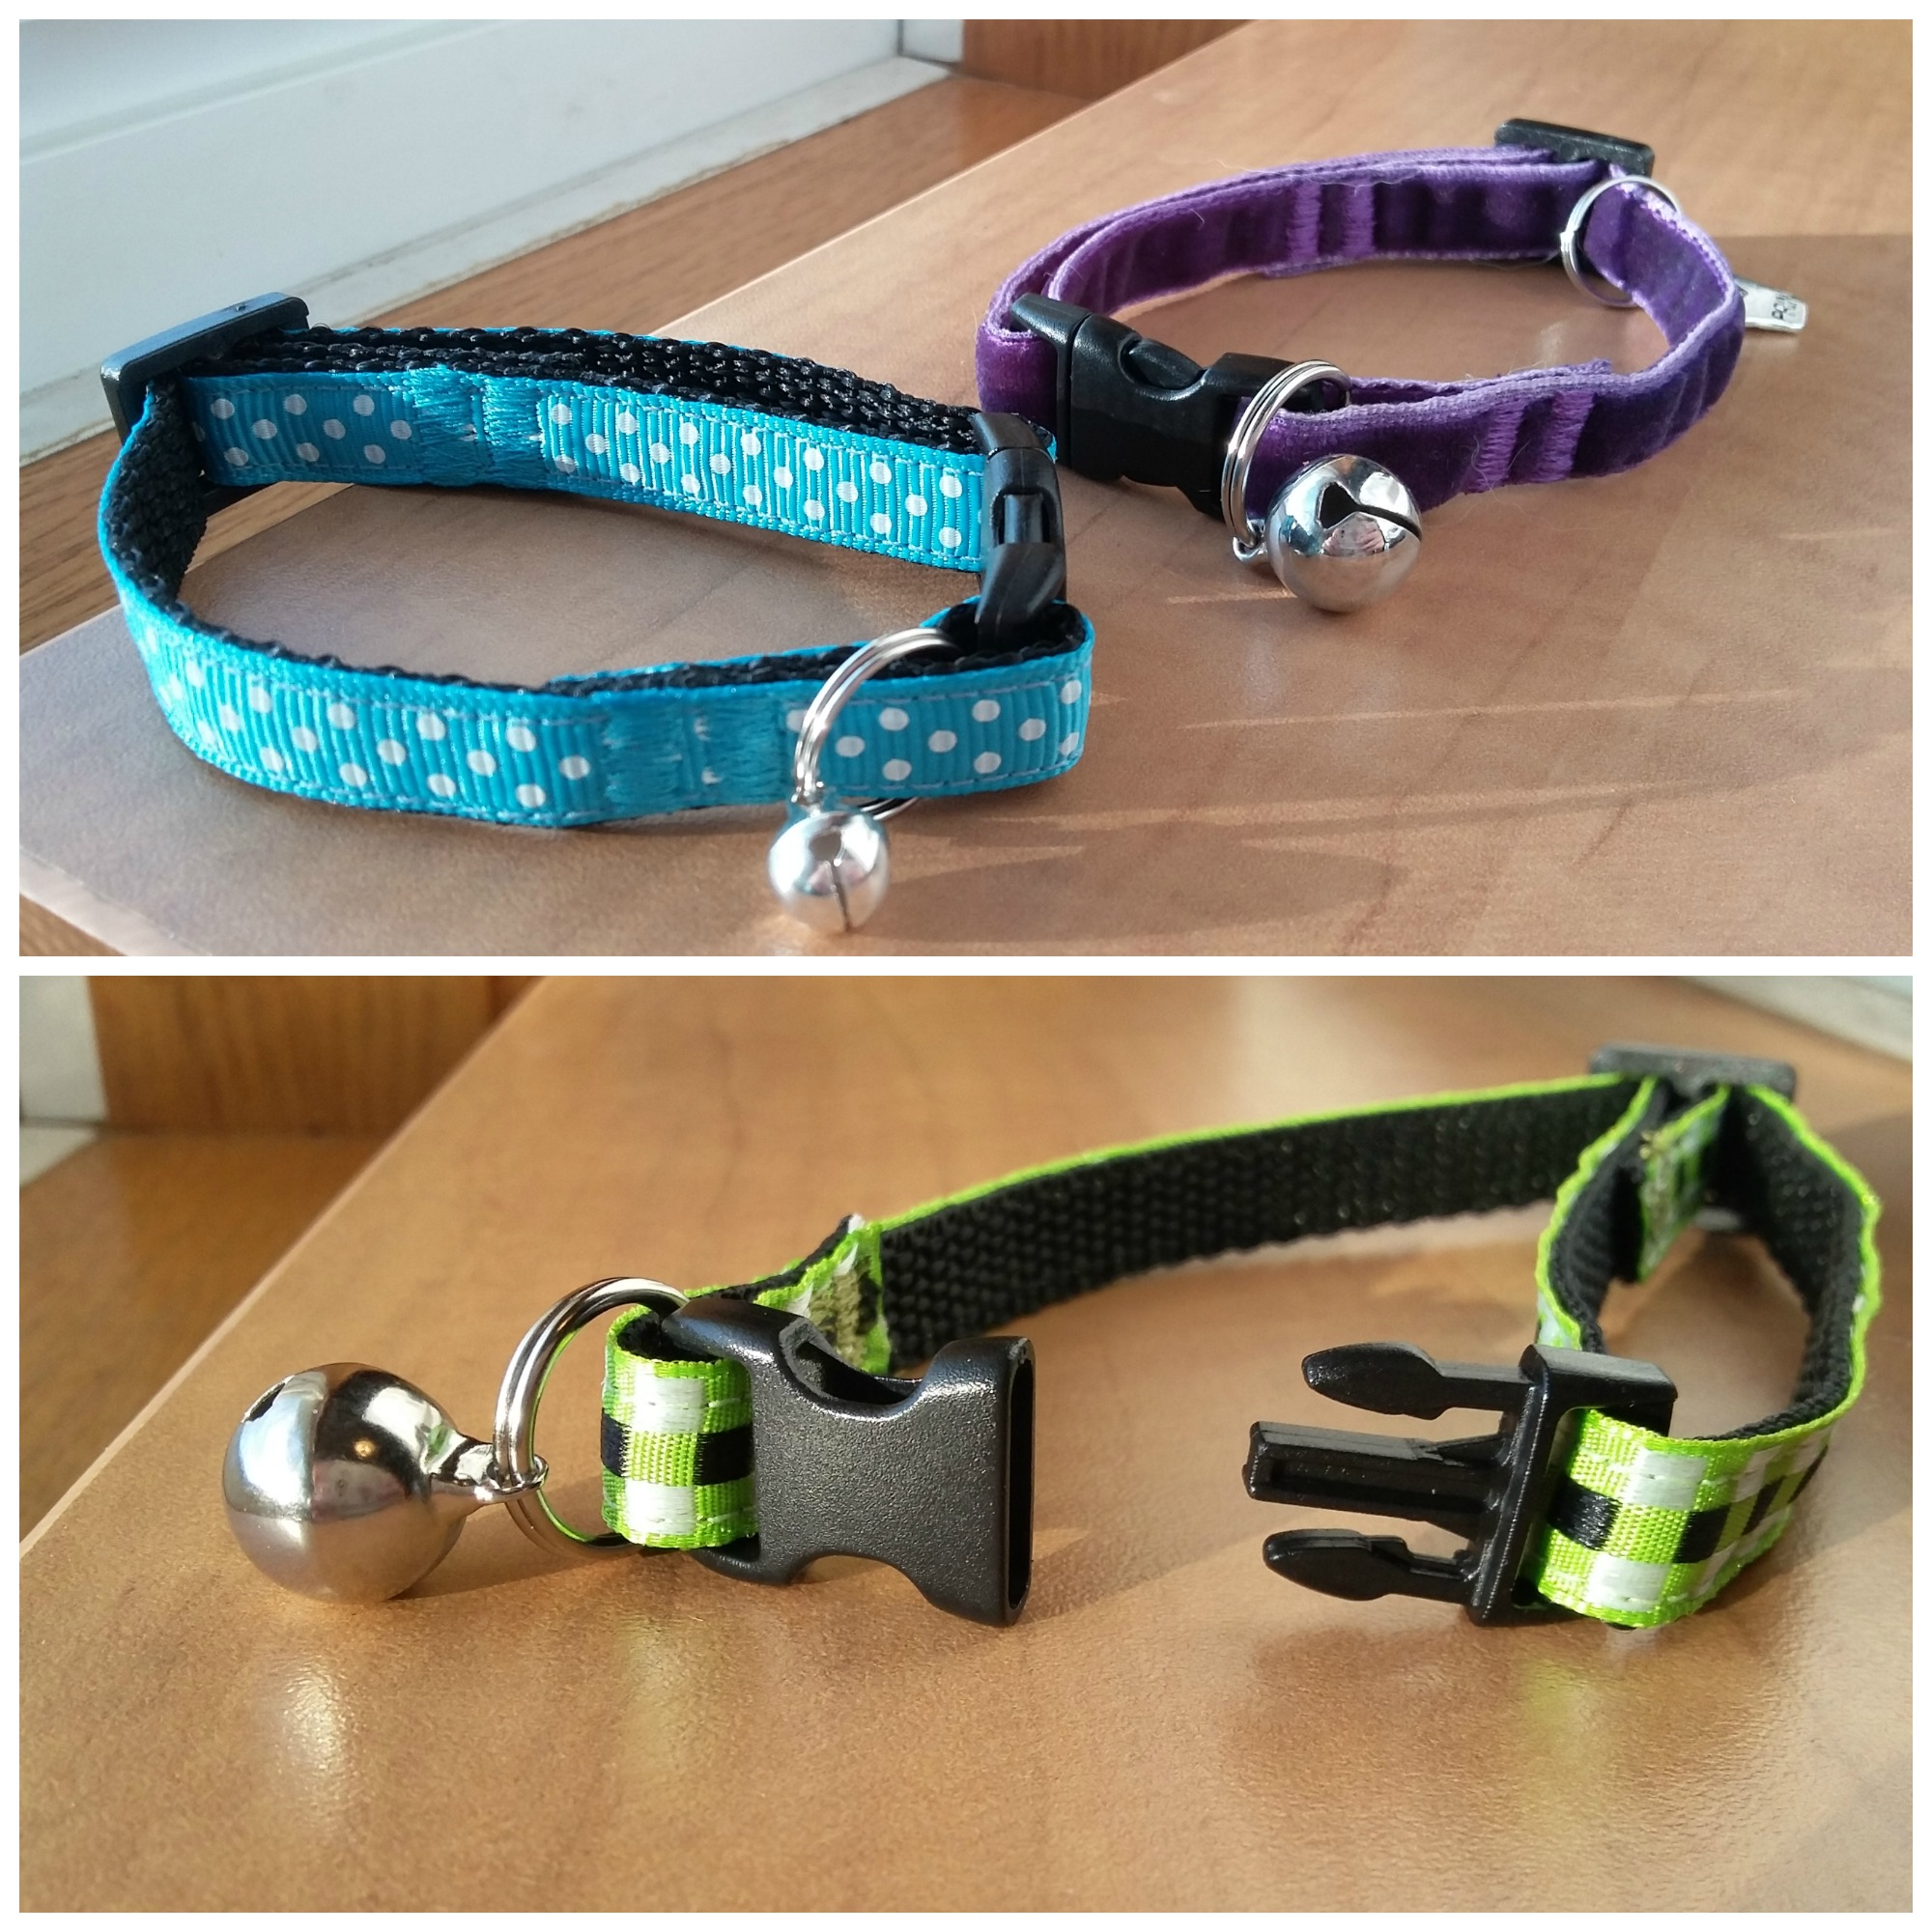 Cool Cat Collars UK has some incredible designs for cat collars, and they're worth every pound!